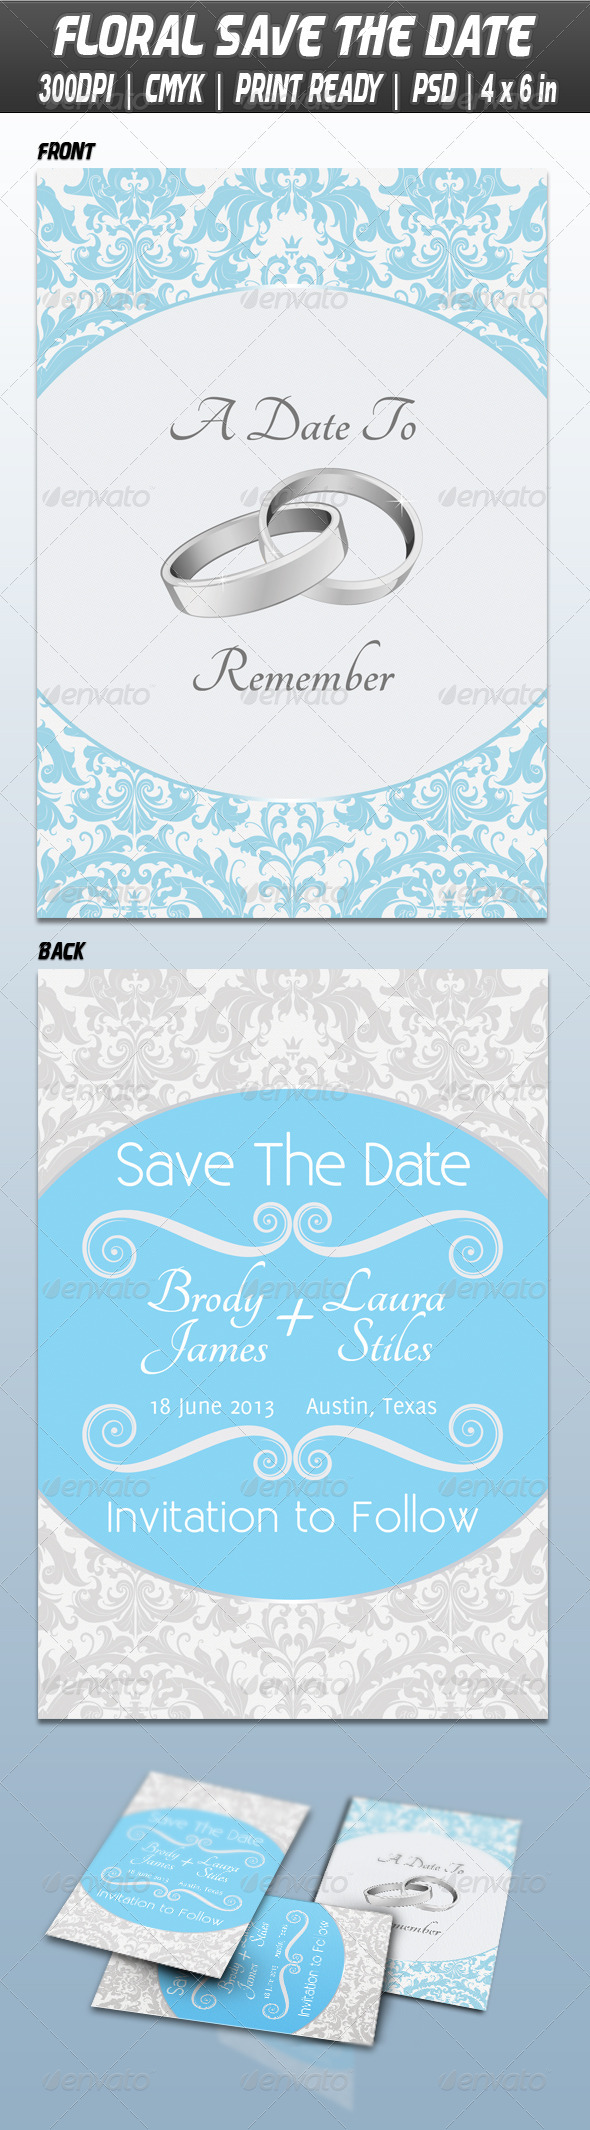 GraphicRiver Floral Save The Date Wedding 3843073